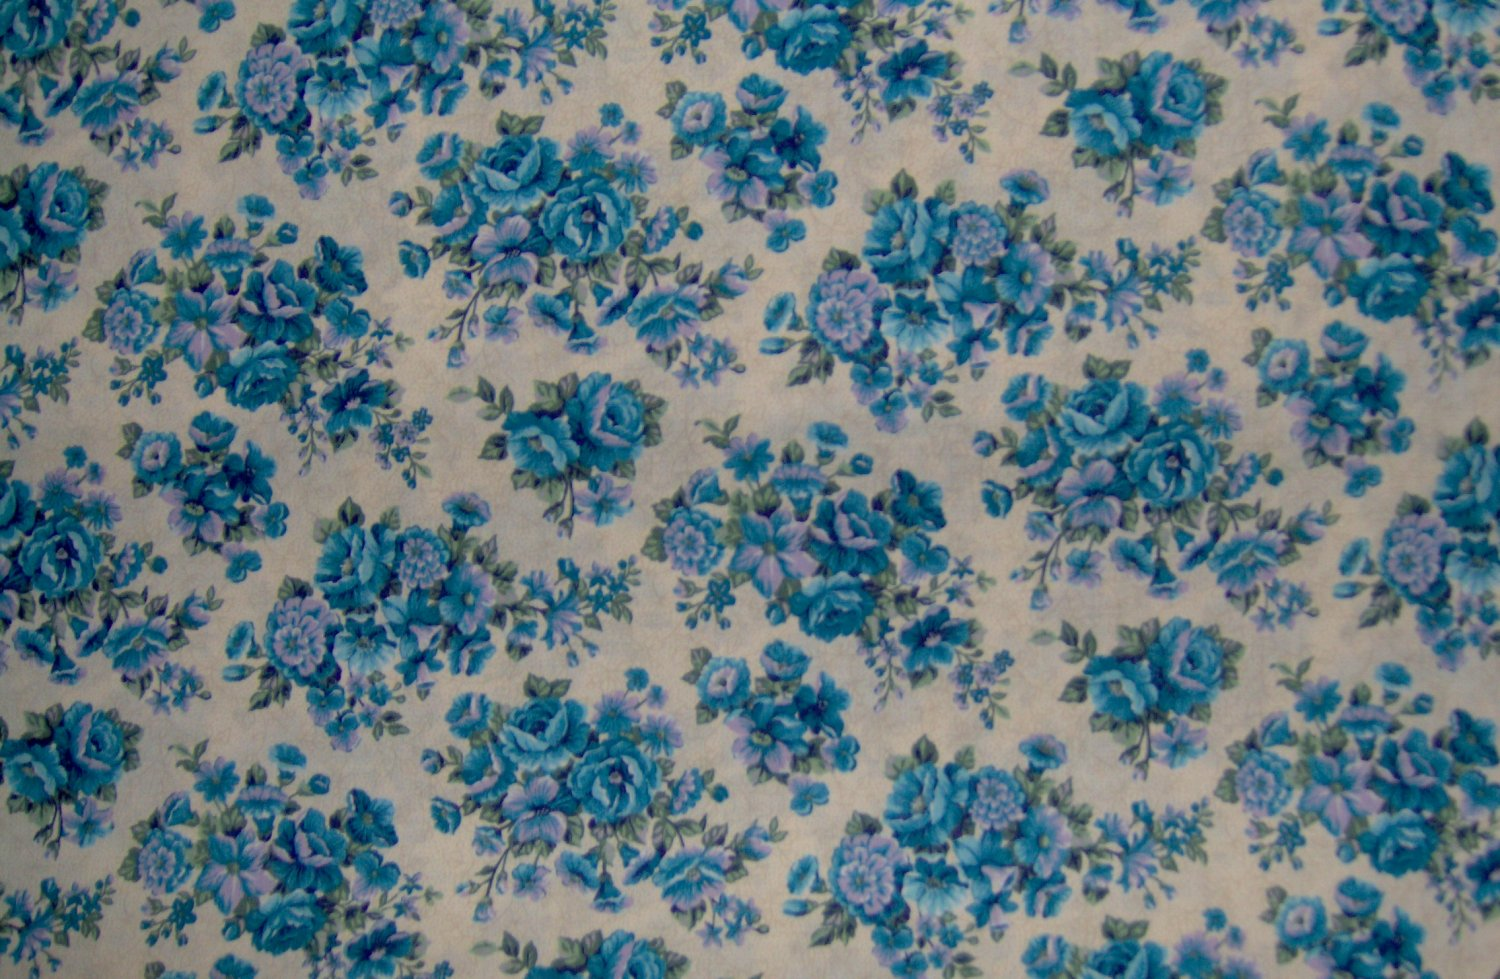 BTY Blue & Lavender Flowers on Tan Toile Vines Cotton Fabric Cranston Print Works VIP By the Yard